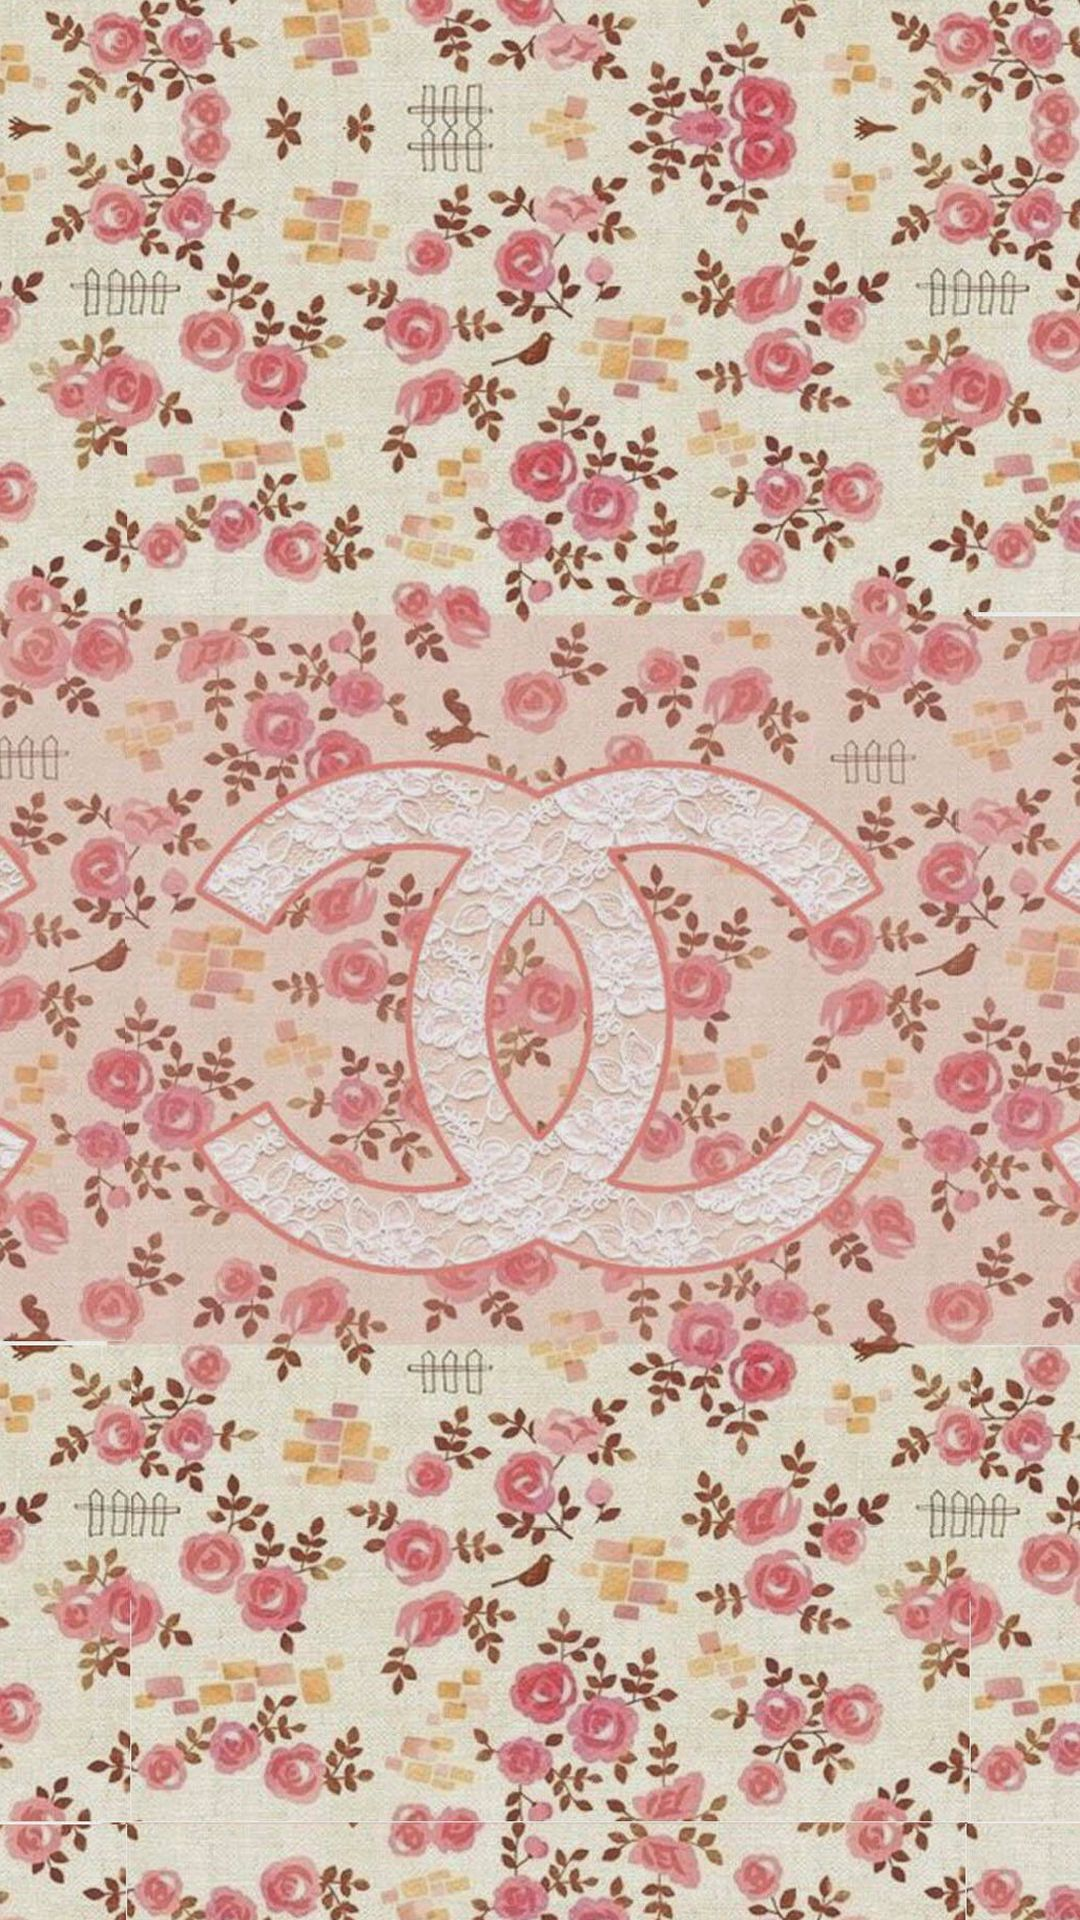 Iphone wallpaper tumblr chanel - Coco Chanel Flowers Pattern Logo Iphone 6 Plus Hd Wallpaper